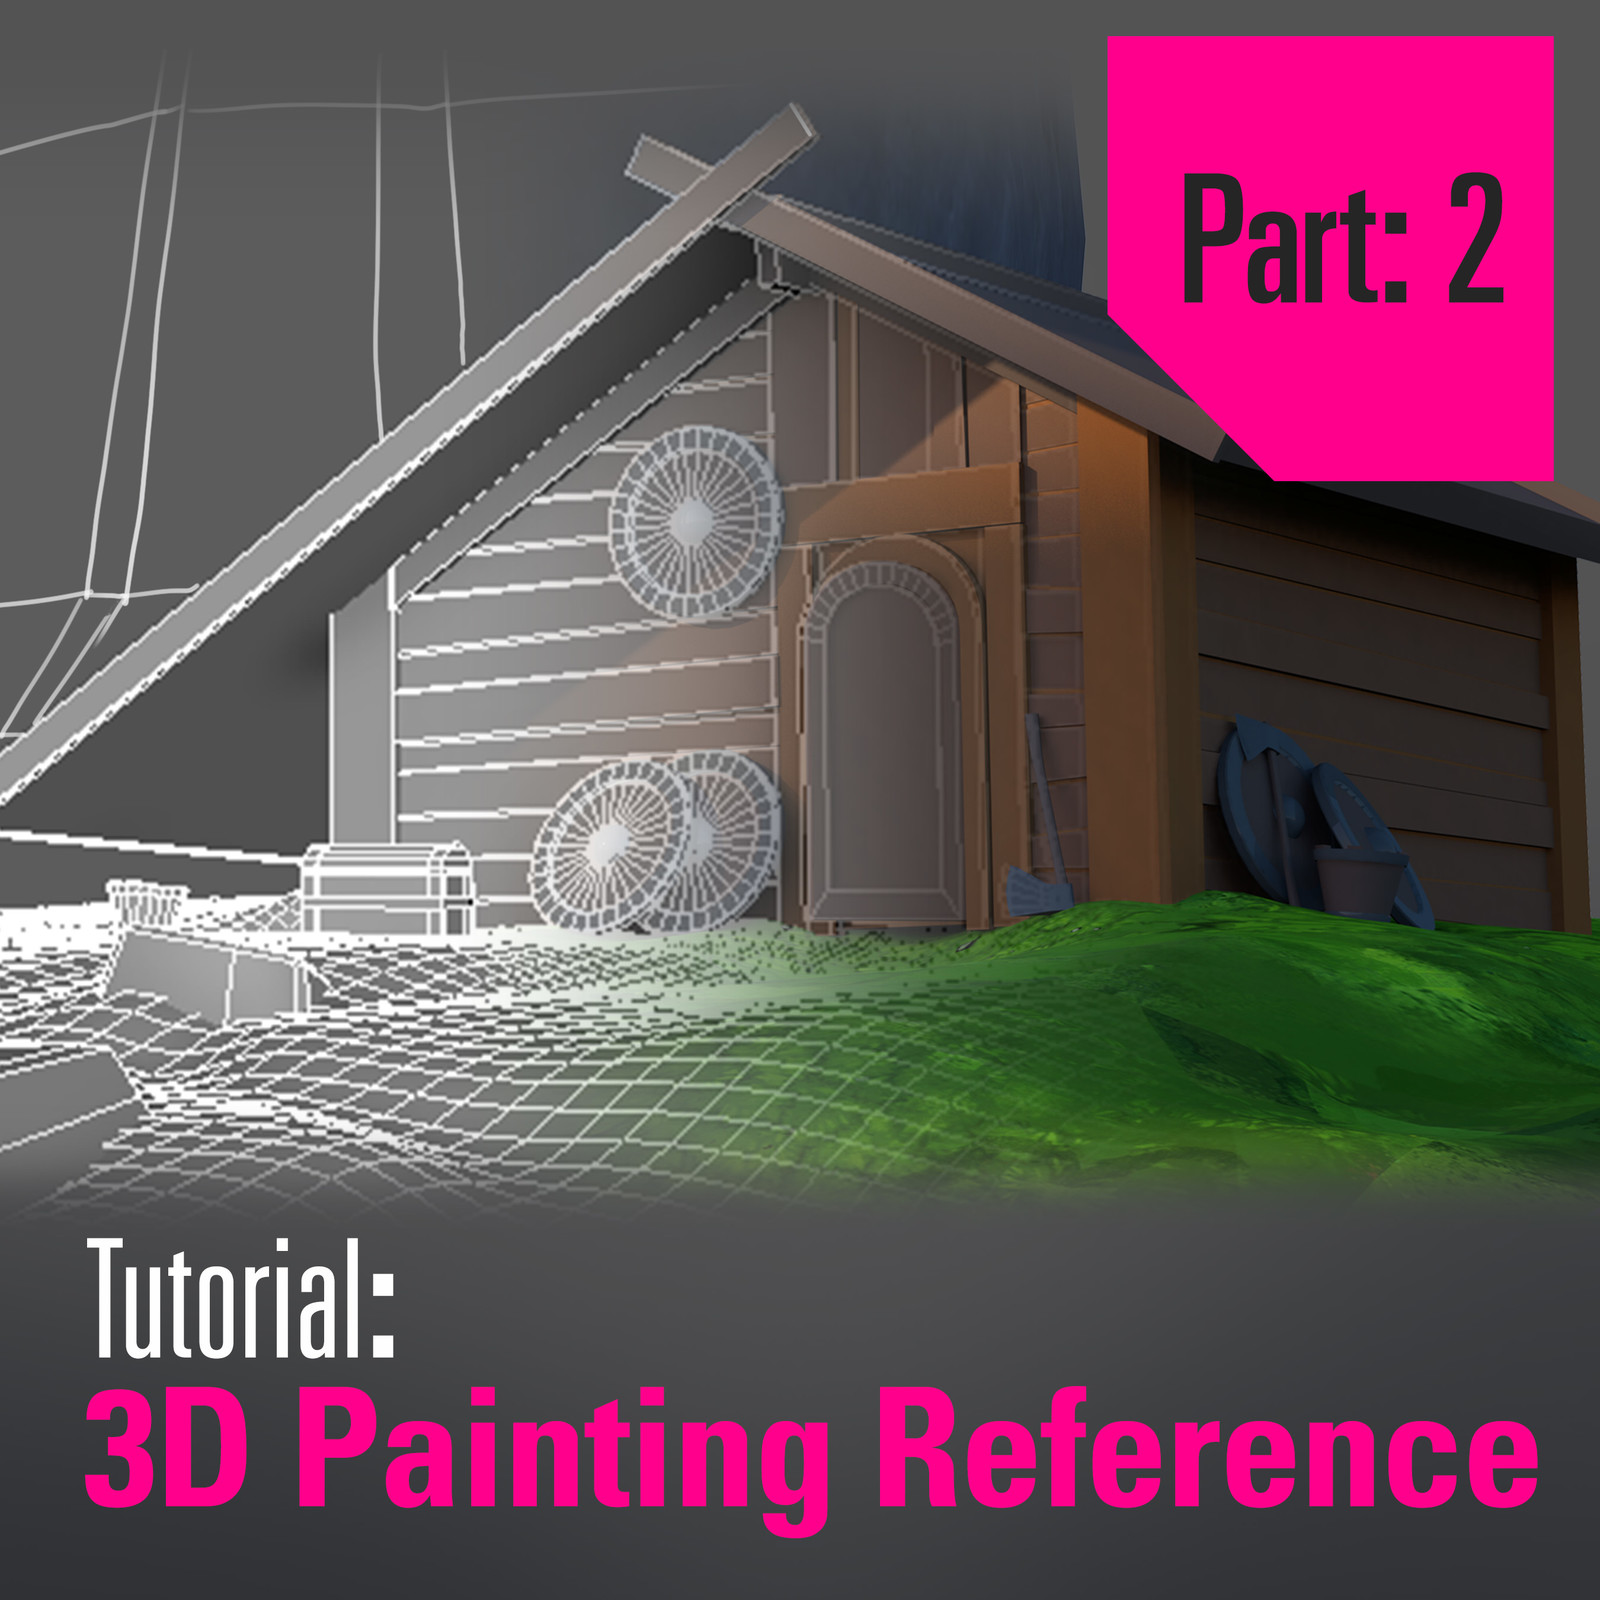 Tutorial: 3D Painting Reference Creation - Part 2